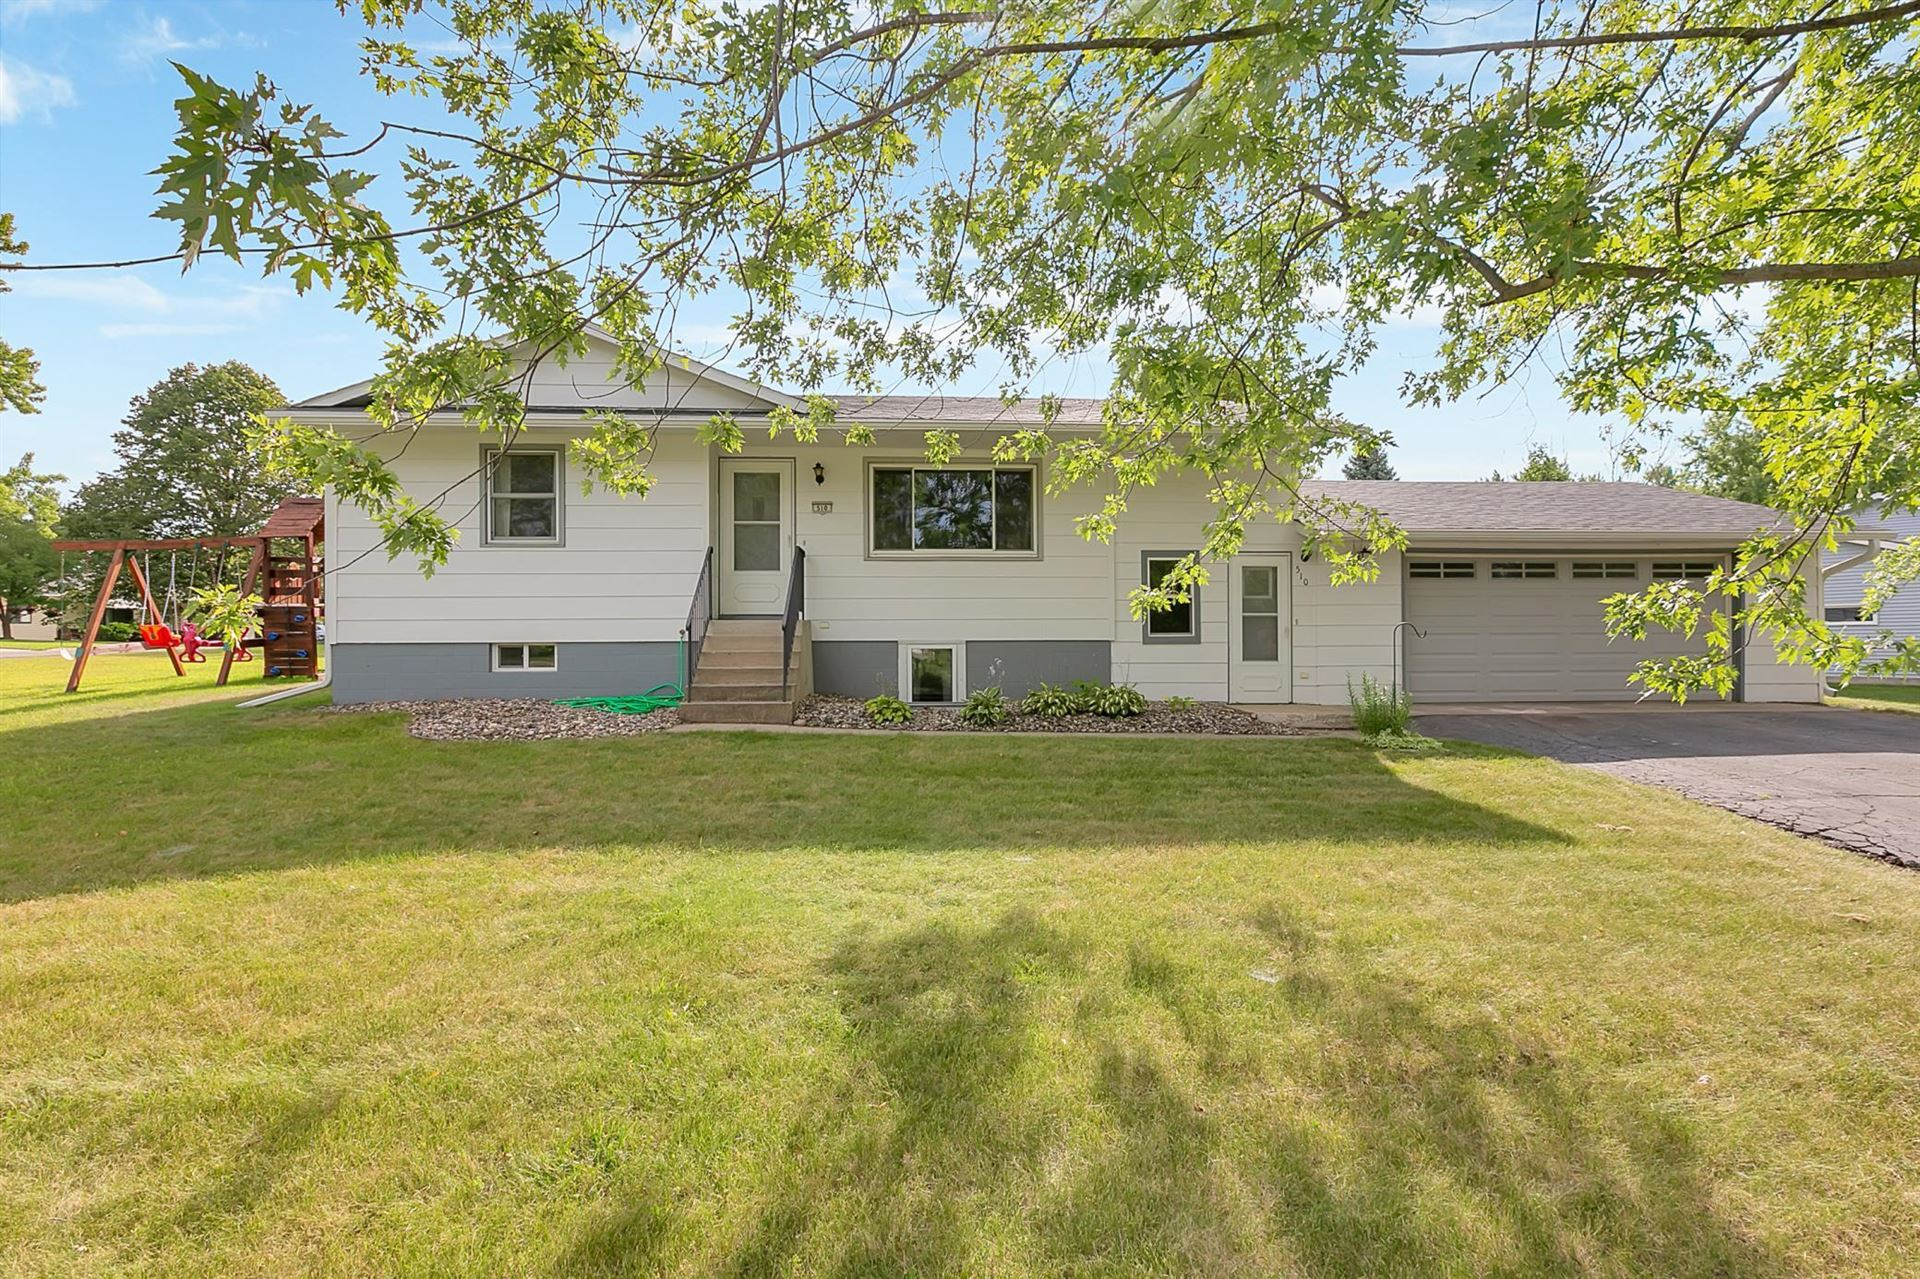 510 9th Avenue N, Cold Spring, MN 56320 - #: 5637919